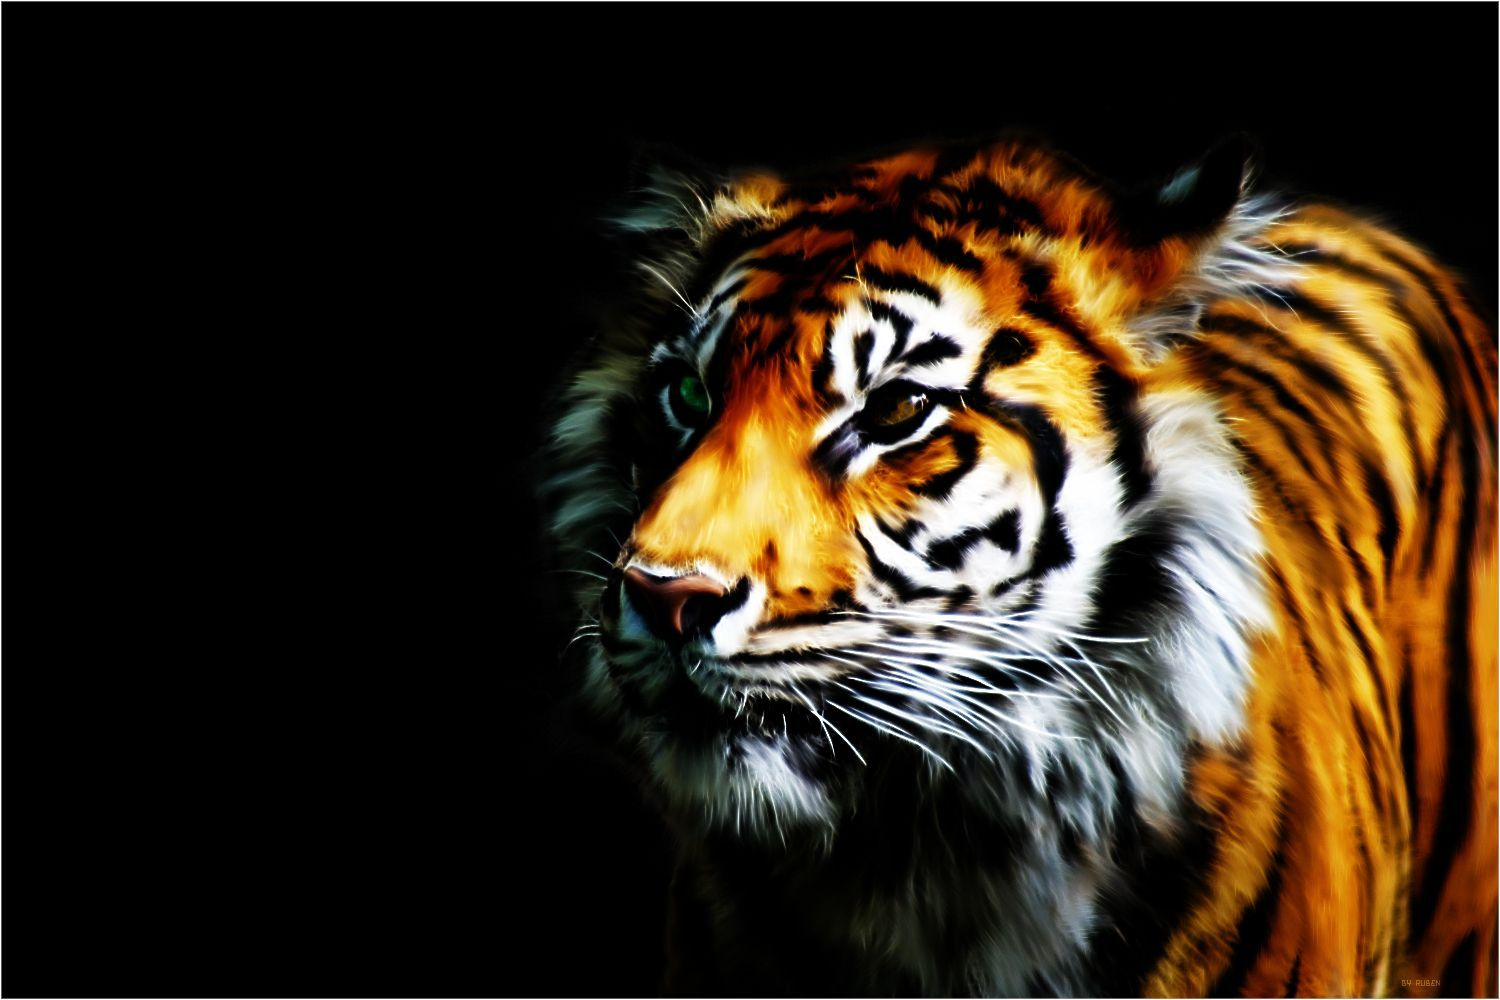 Hipster Tiger Galaxy Wallpapers Top Free Hipster Tiger Galaxy Backgrounds Wallpaperaccess